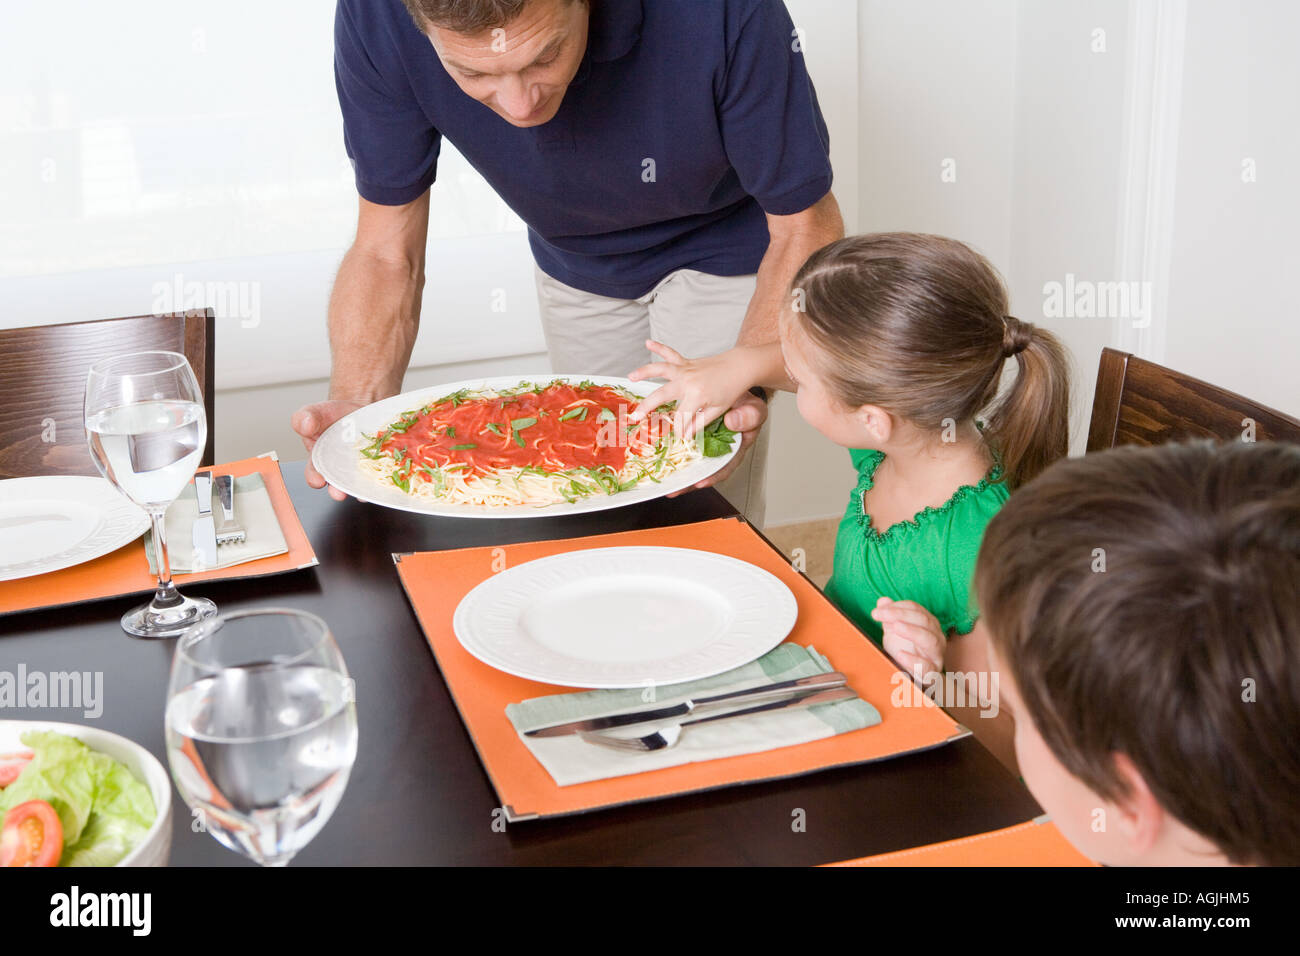 Girl taking spaghetti as father tries to serve meal - Stock Image